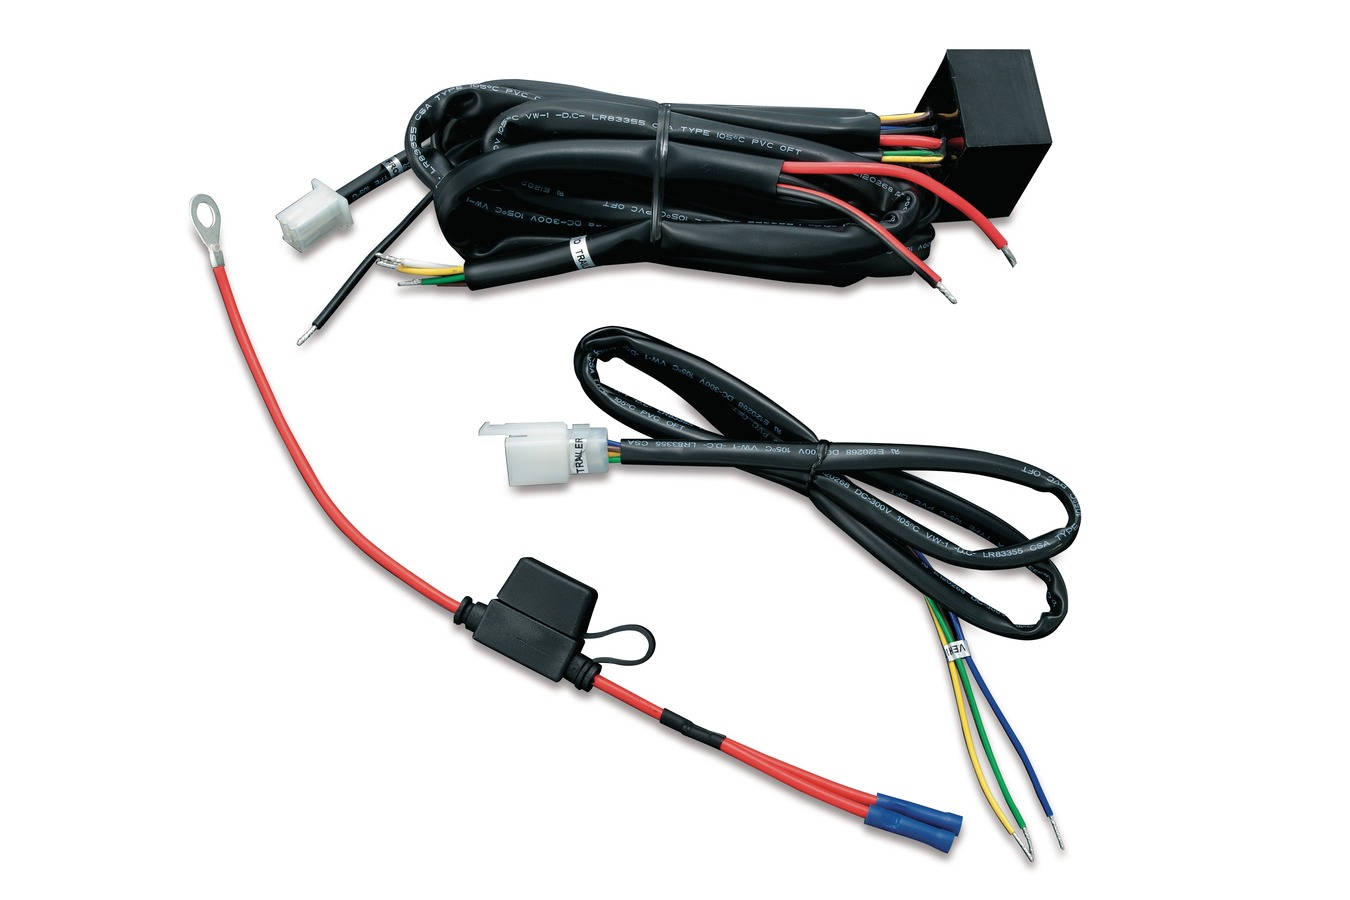 hight resolution of harley tail light wiring harness kits wiring diagram post harley tail light wiring harness kits